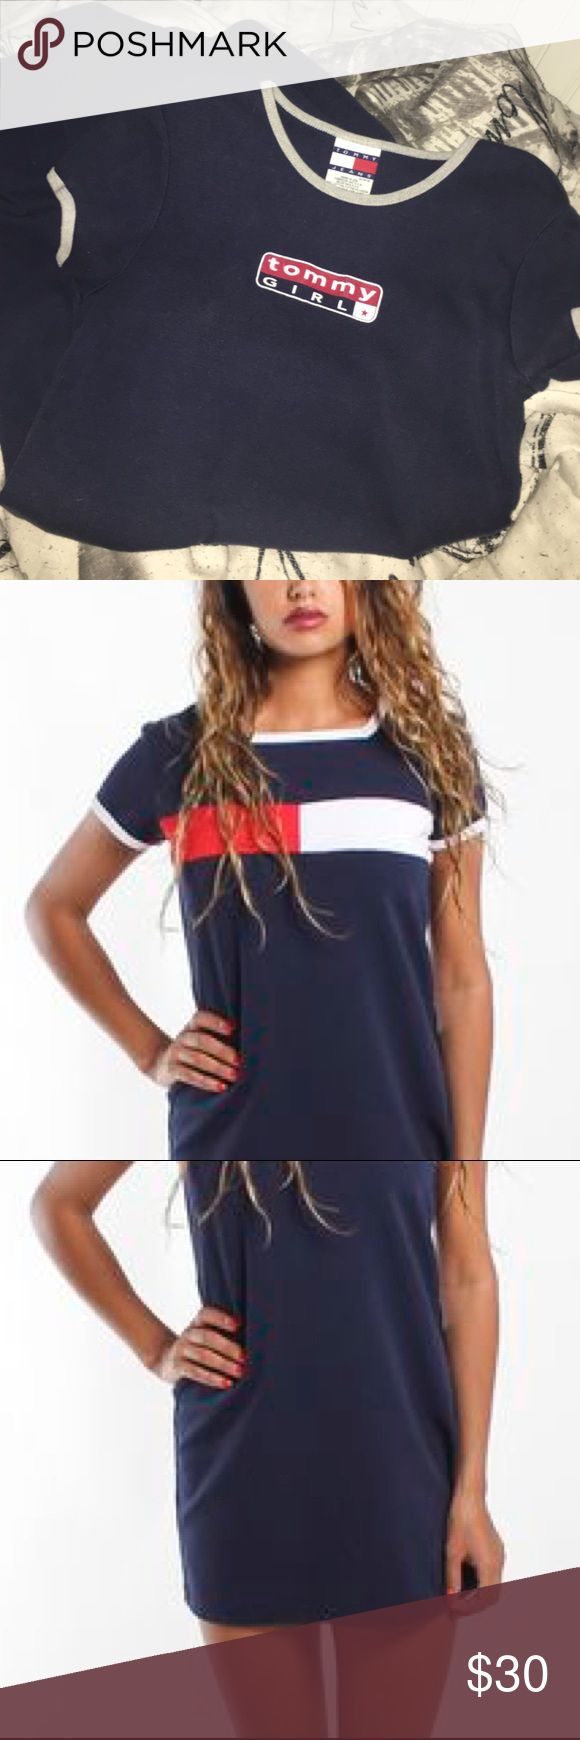 Tommy Girl 90s Vintage Tshirt Dress super cute and stylish. genuine vintage tommy hilfiger. the 2nd and 3rd pic show the dress style and how it lays on. Tommy Hilfiger Dresses